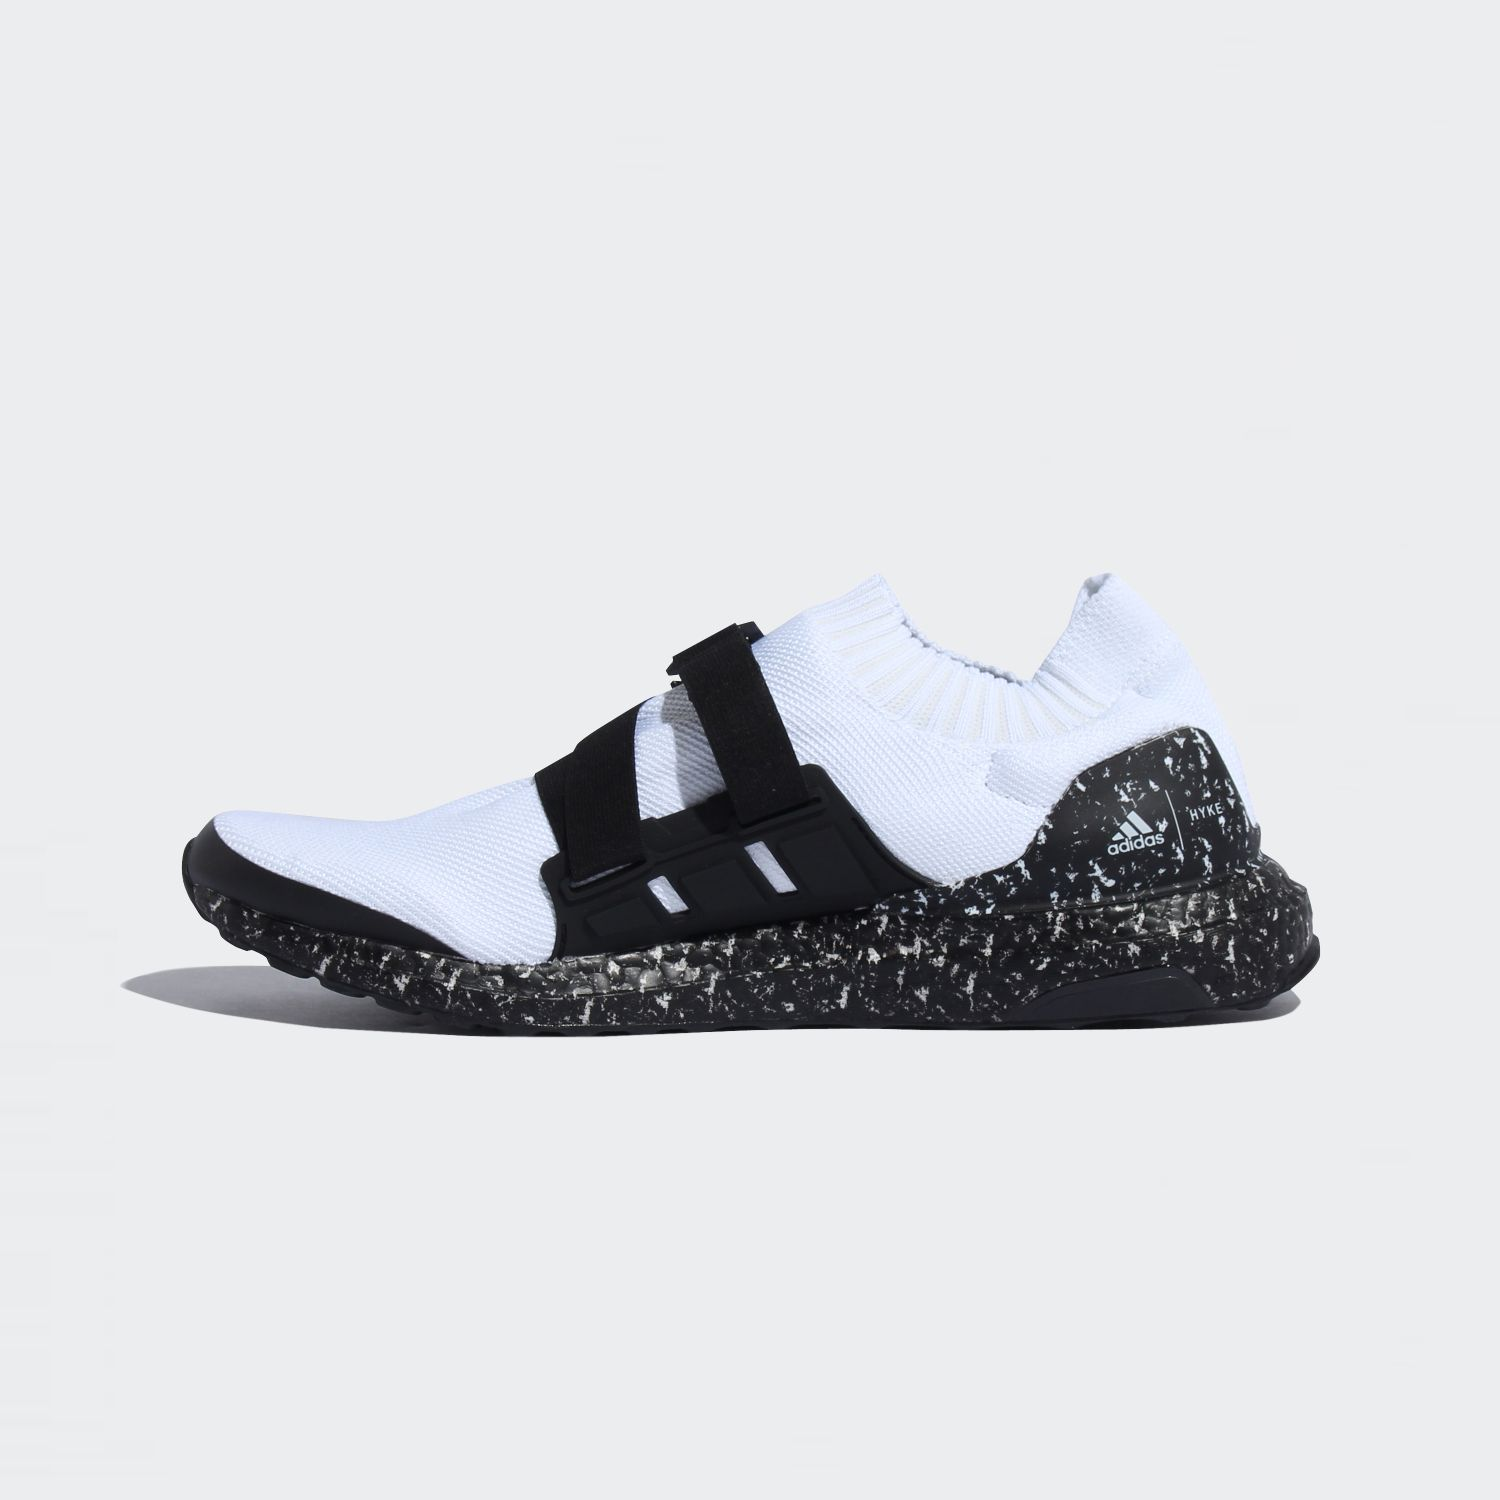 Ultraboost AH-001 White / Black [2]